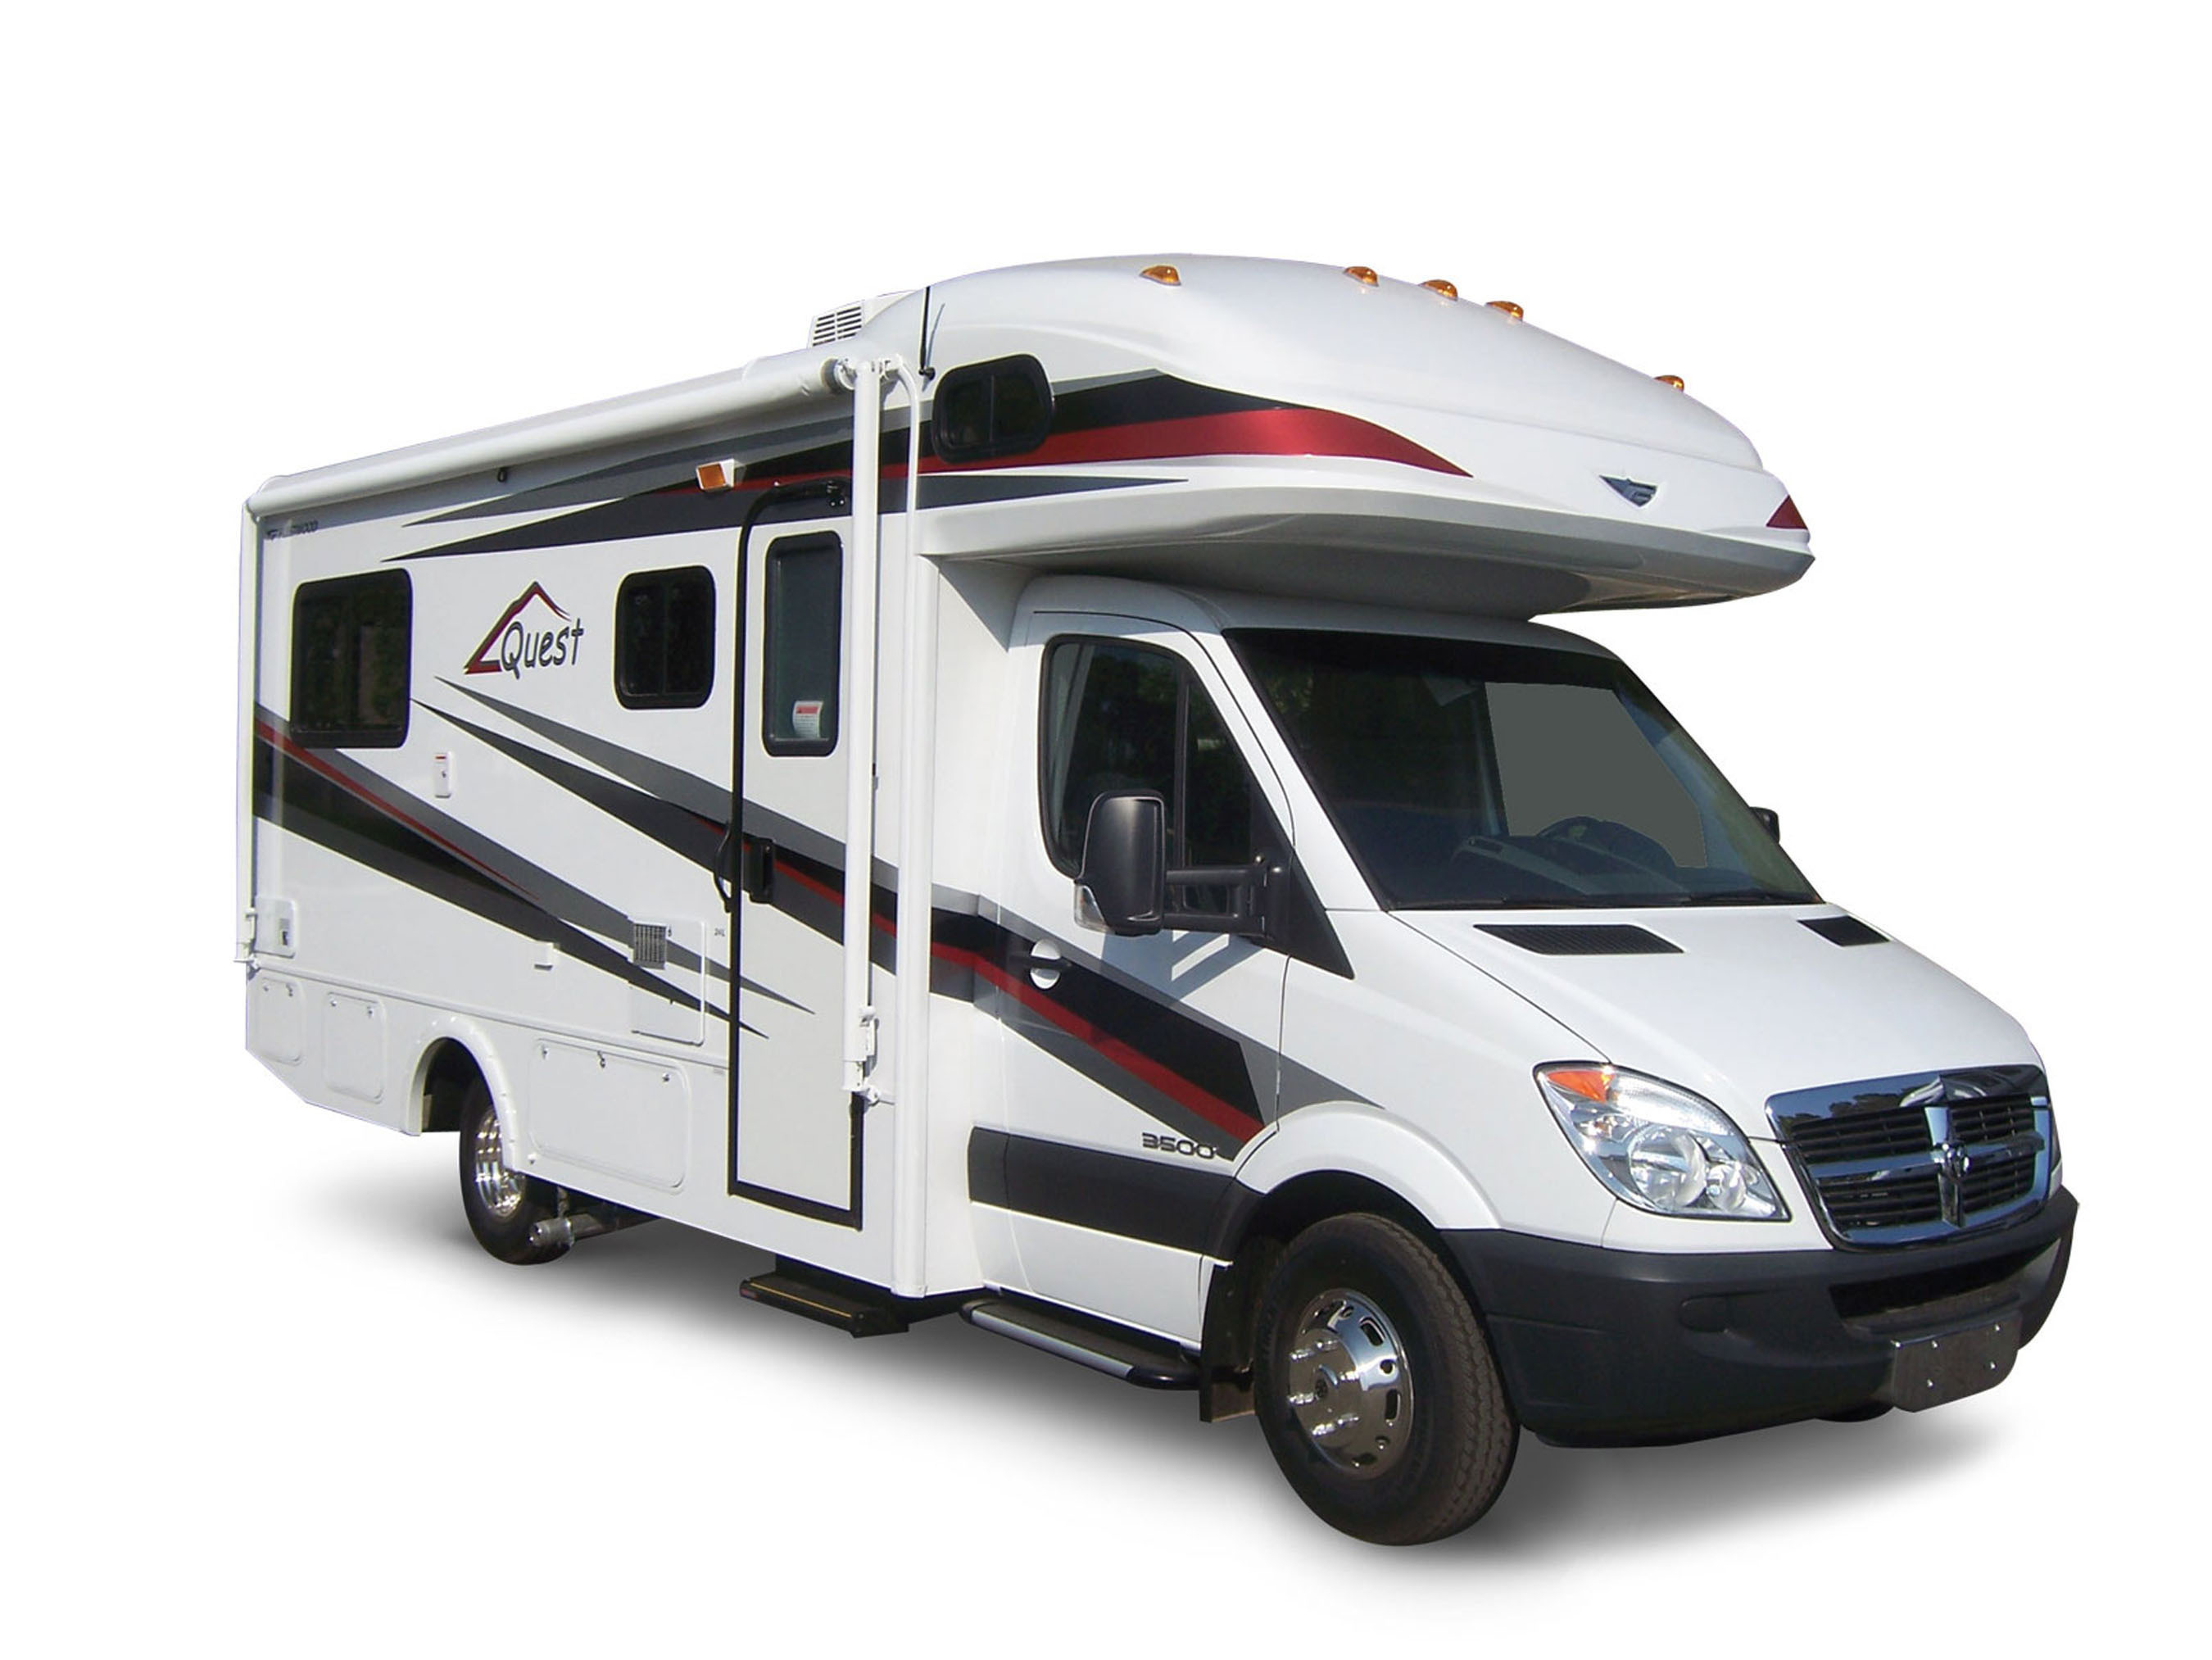 Fleetwood Rv Inc Rolls Out Limited Edition 2010 Quest